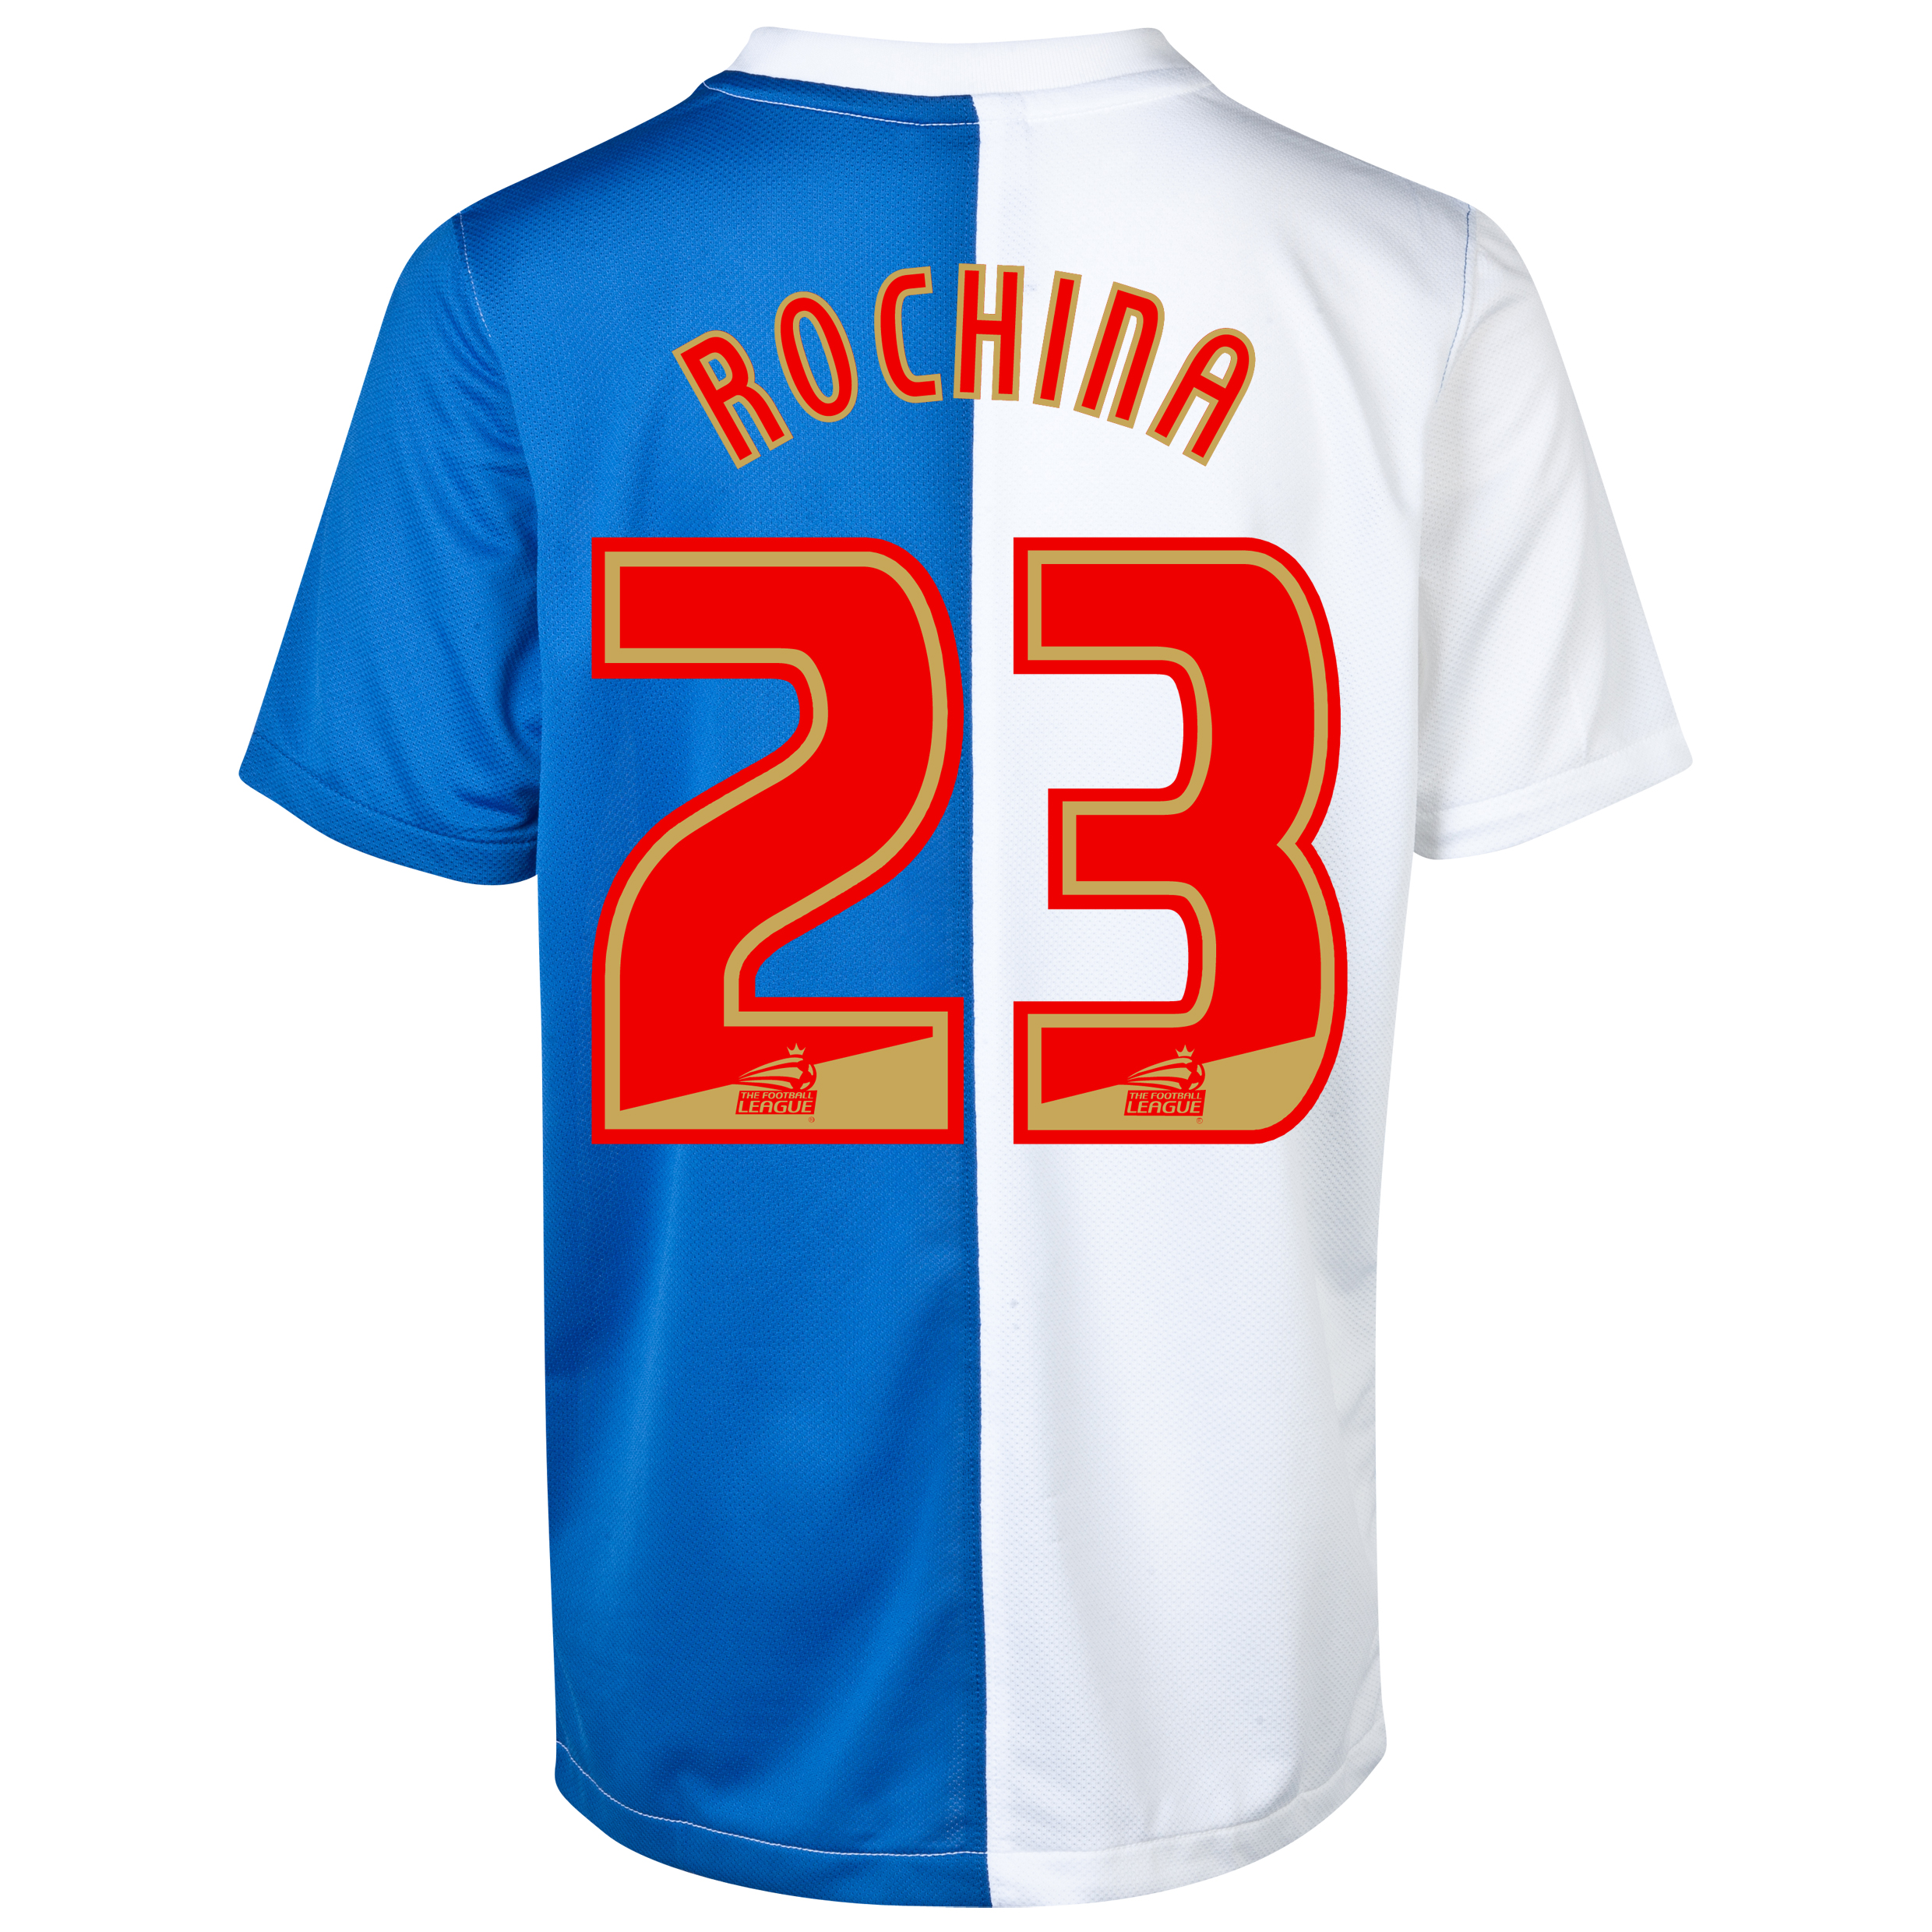 Blackburn Rovers Home Shirt 2013/14 - Kids with Rochina 23 printing